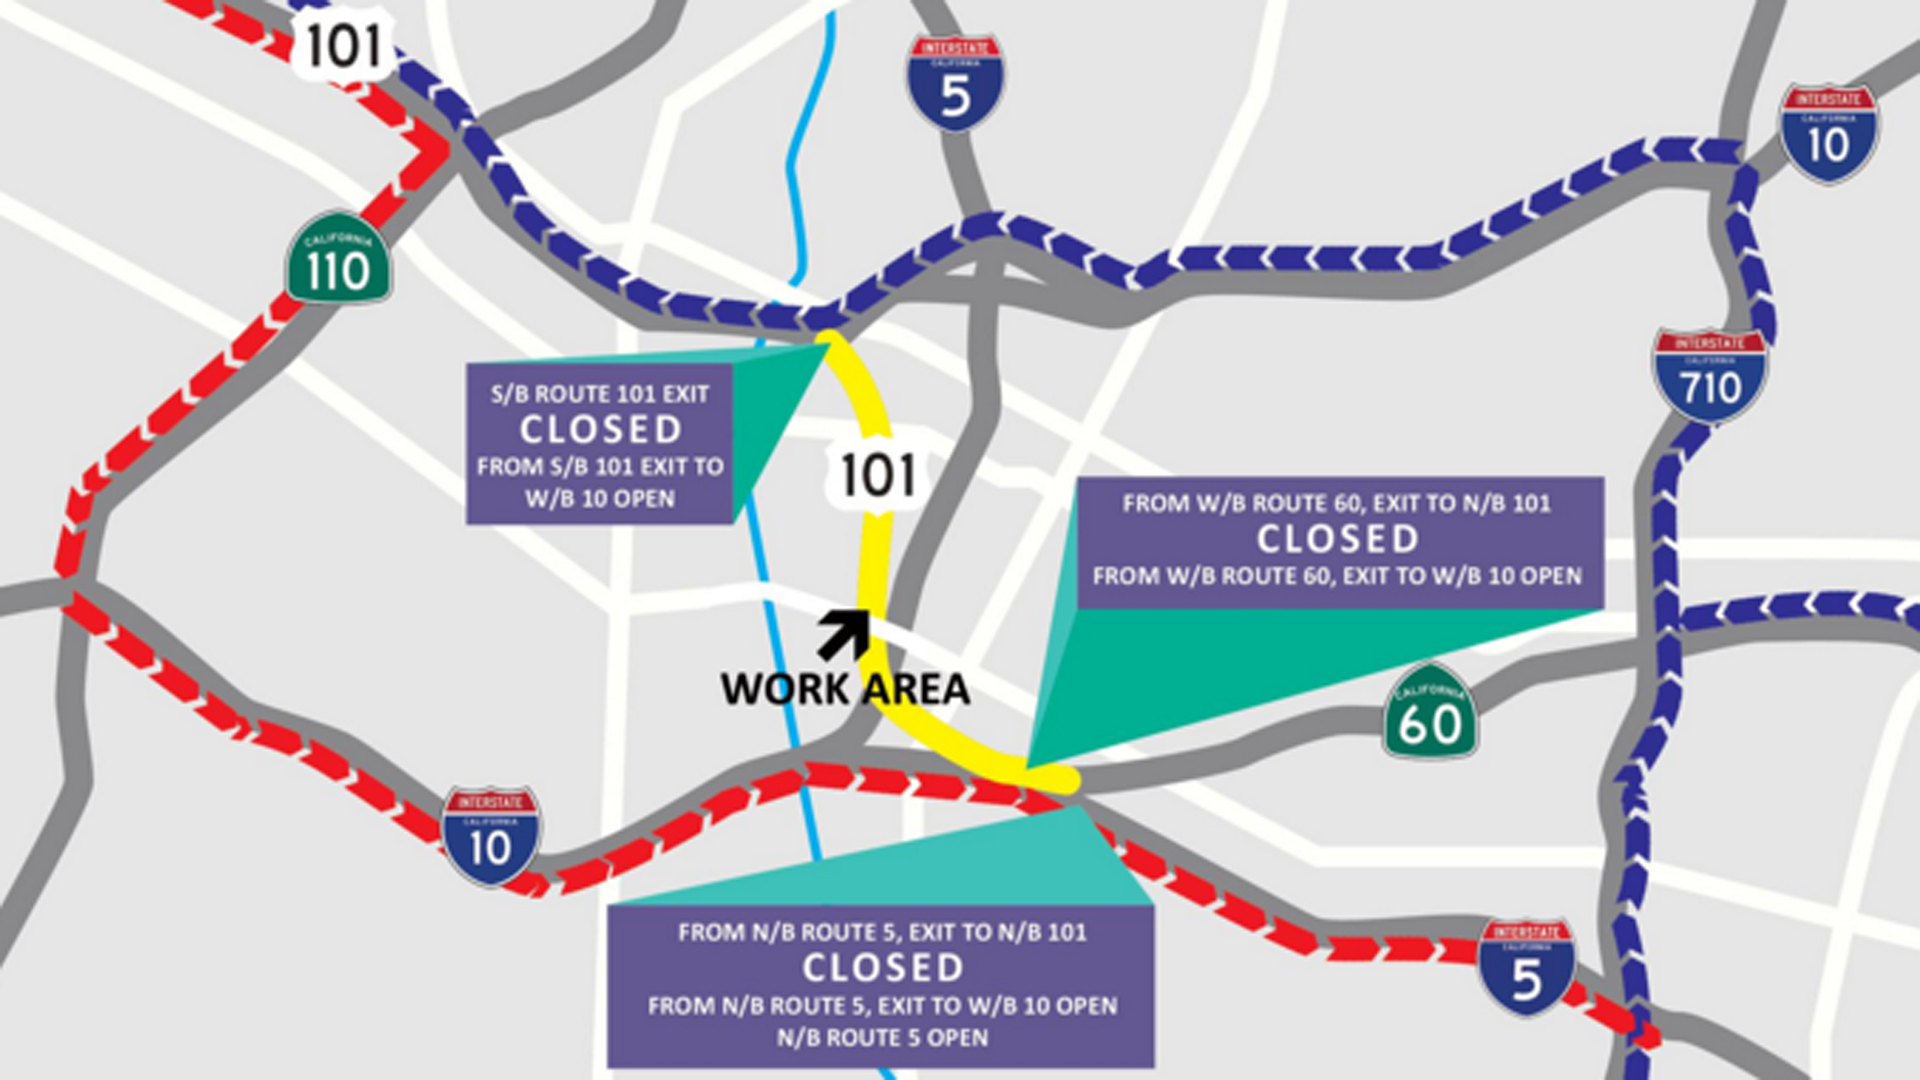 A map on the Sixth Street Viaduct project's website shows the affected stretch of 101 Freeway.